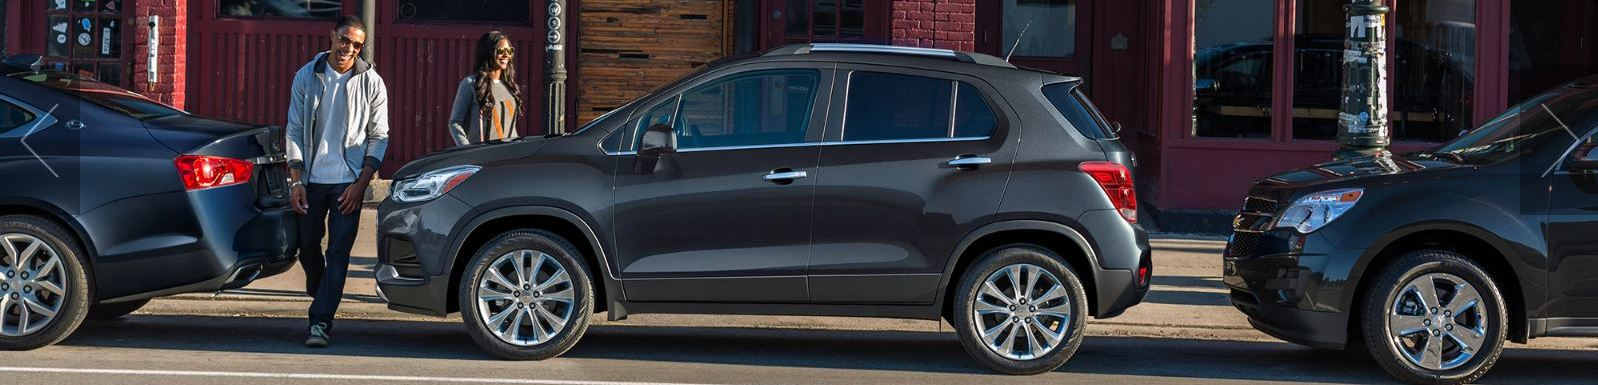 2020 Chevrolet Trax Leasing near Claremore, OK